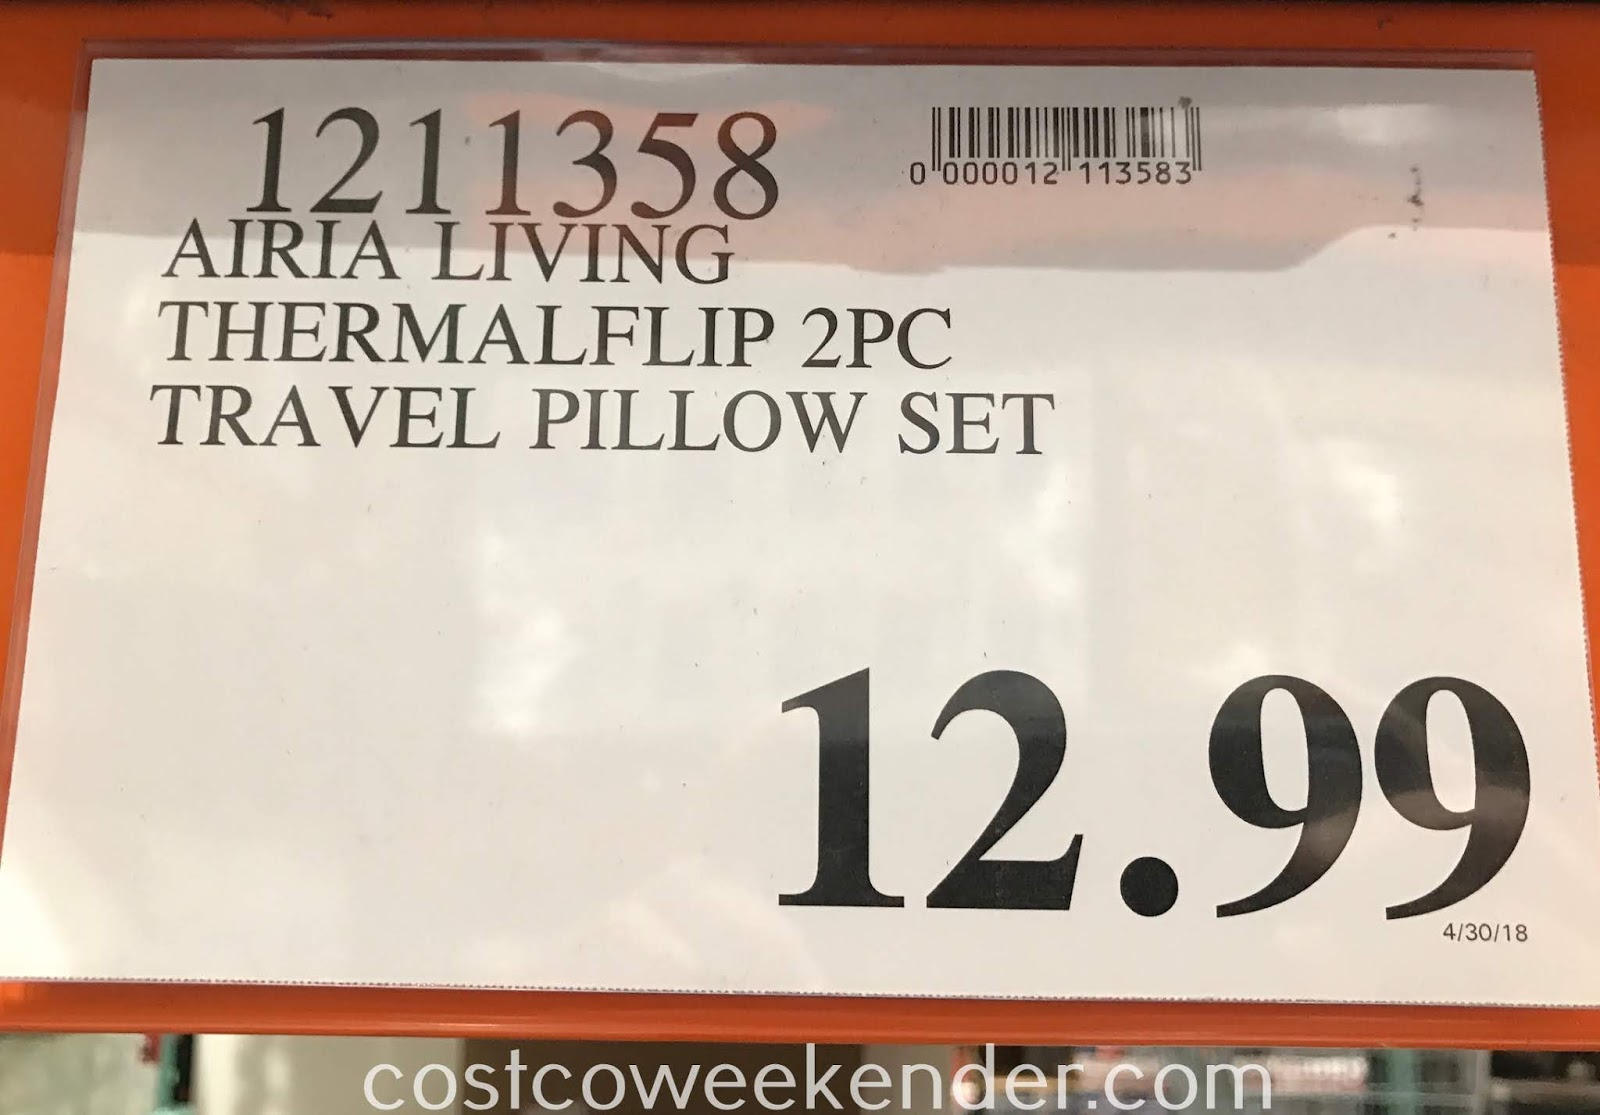 Deal for the Airia Living ThermaFlip 2 Piece Travel Pillow Set at Costco